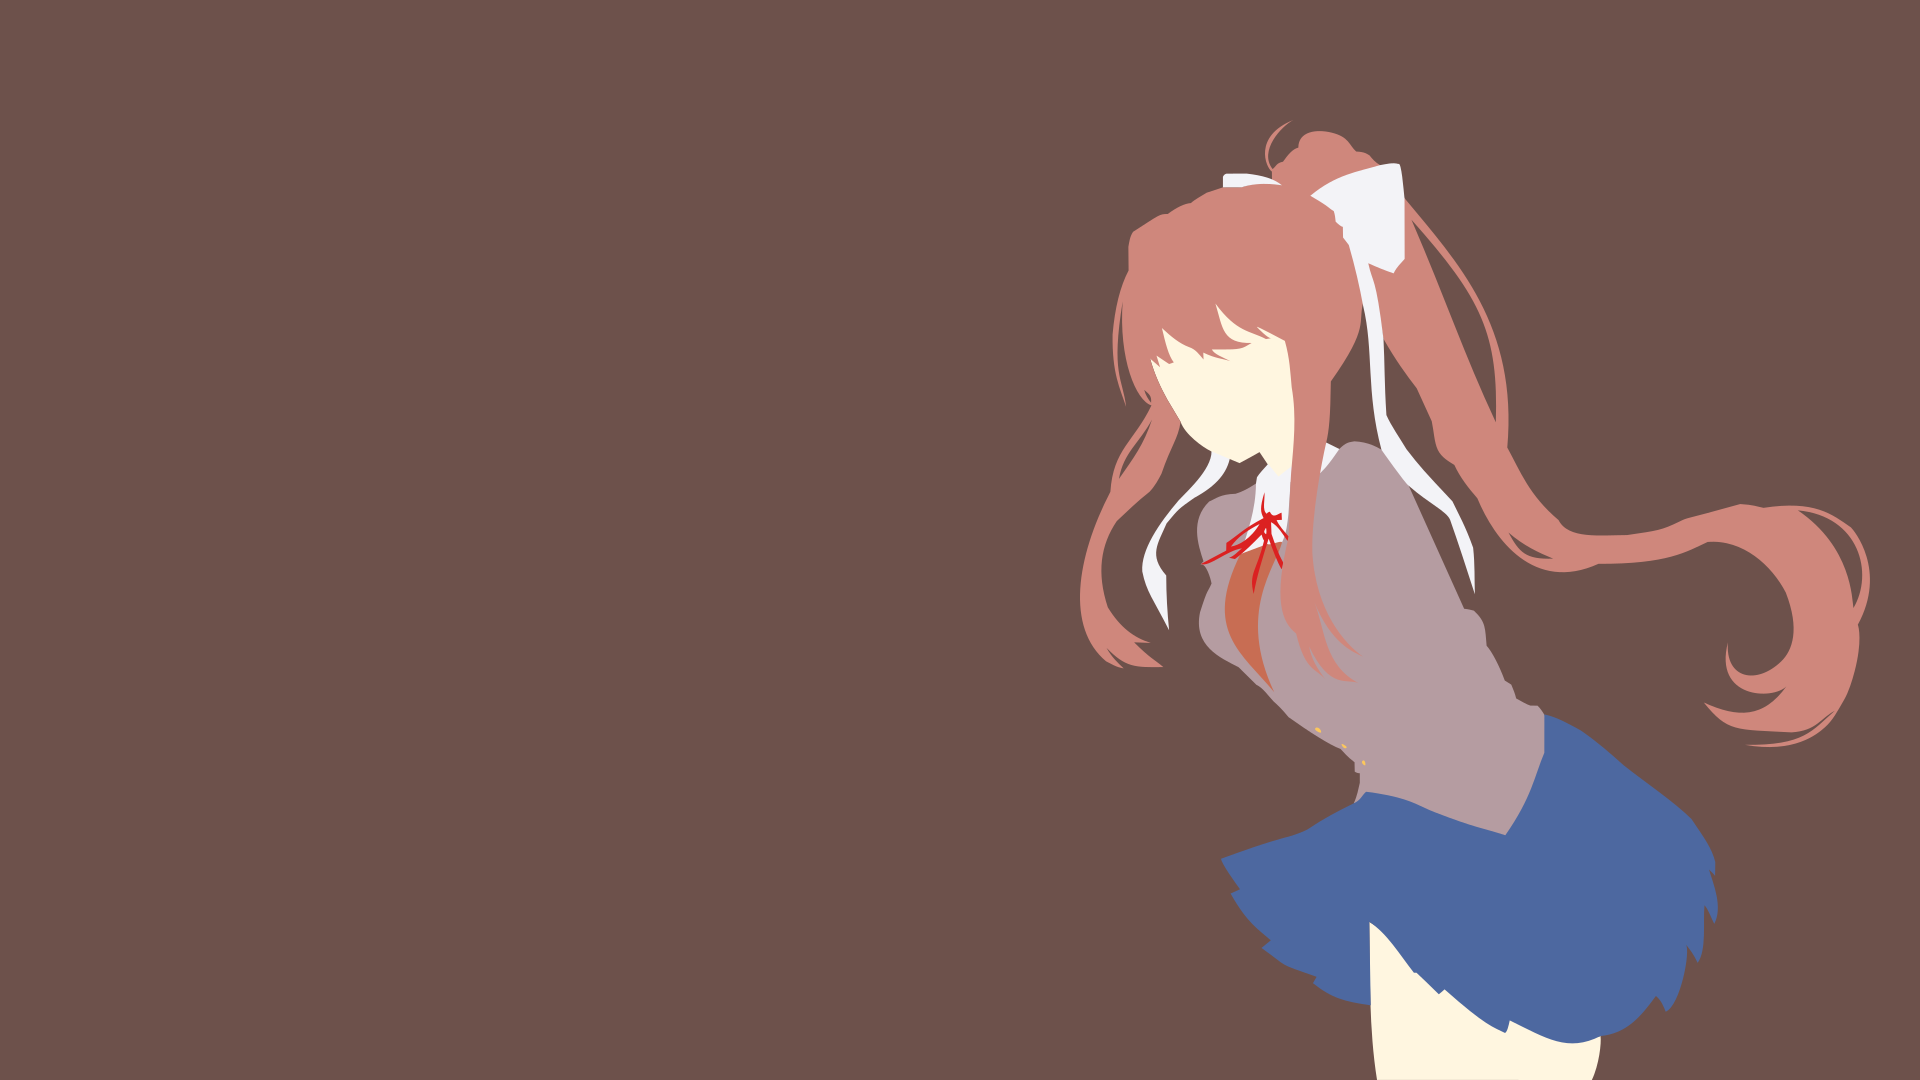 Just Monika Doki Doki Literature Club By Litandus On Deviantart